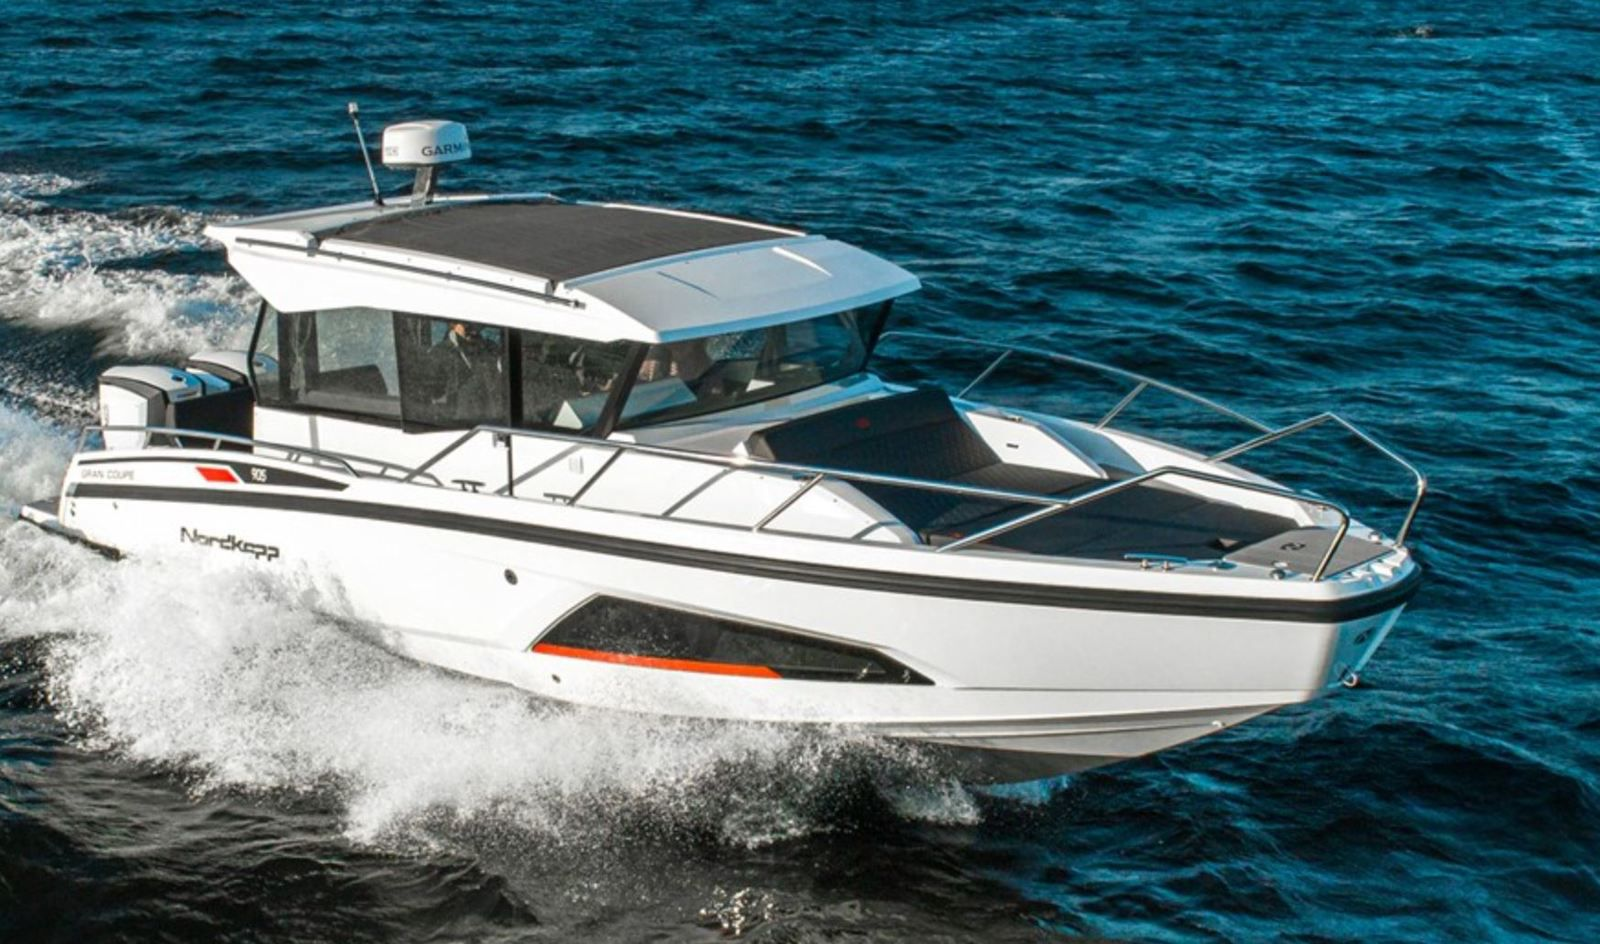 Nordkapp and Sting replace Evinrude by Mercury Marine